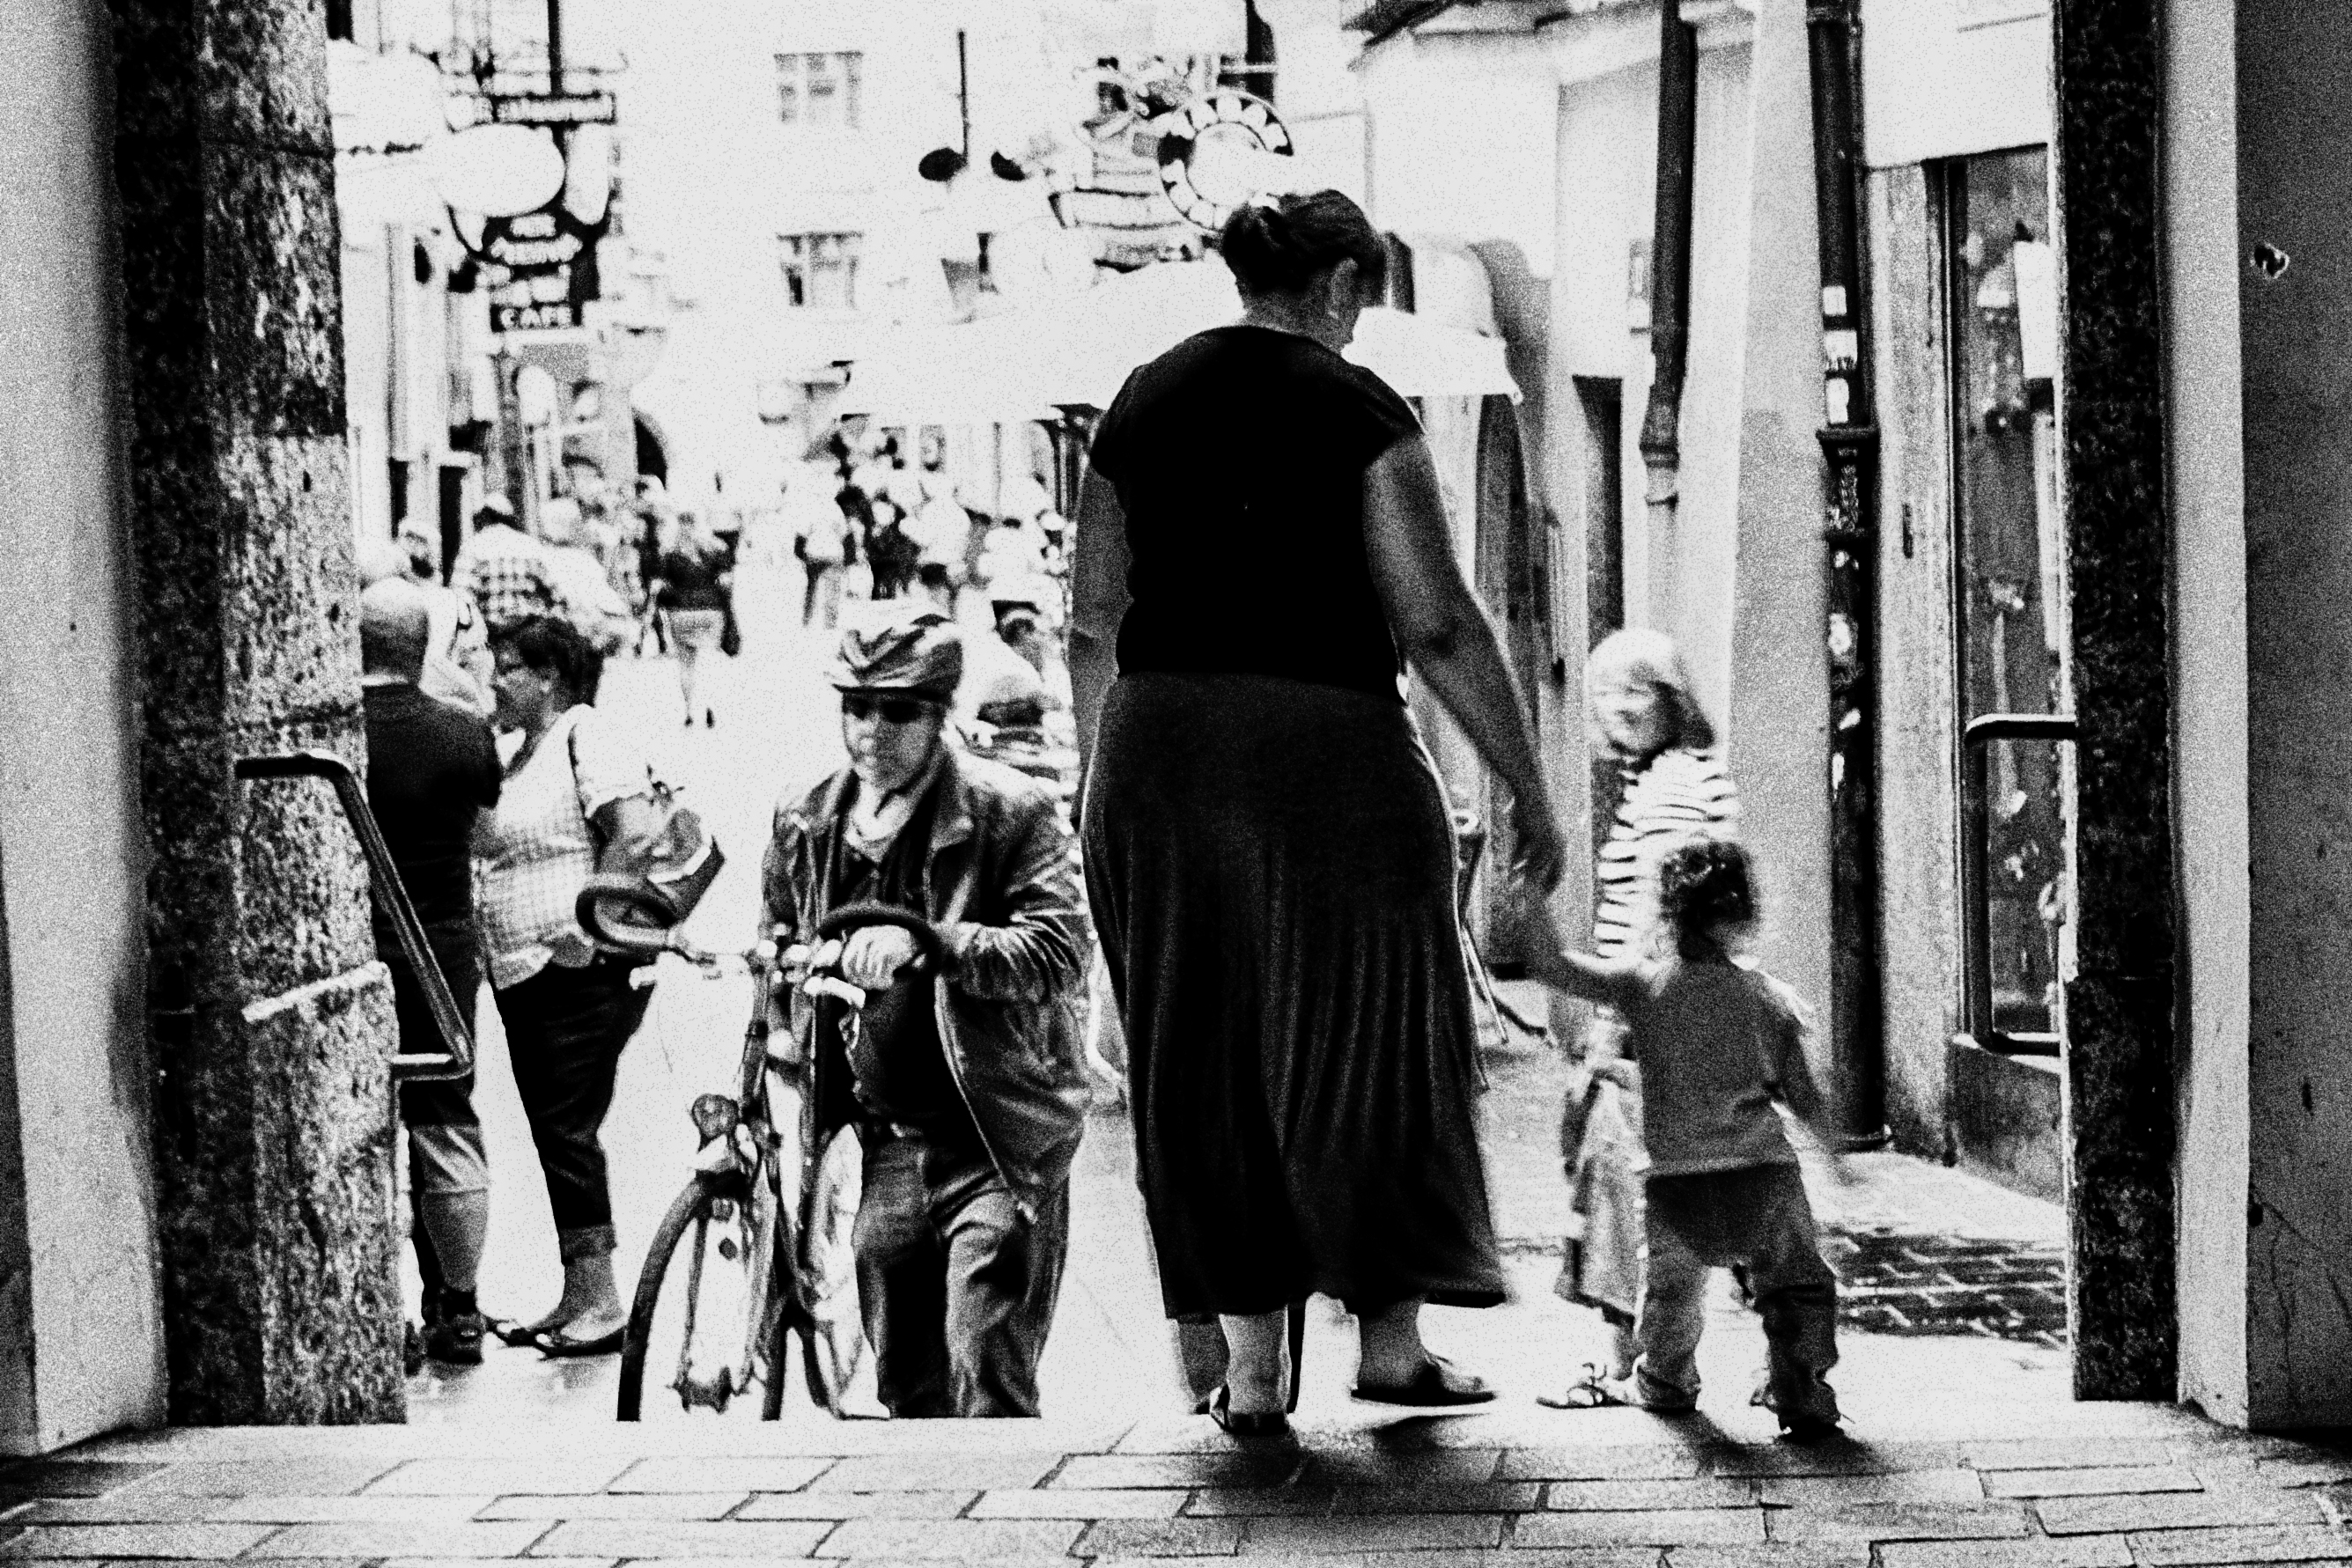 Wallpaper People Window Street Children Urban Road Standing Austria Tyrol Fujifilm Exploring Infrastructure Blackandwhite Girl Bw Moments Blackwhite Alley Blackandwhitephotography Bwphotography Streetlife Photograph